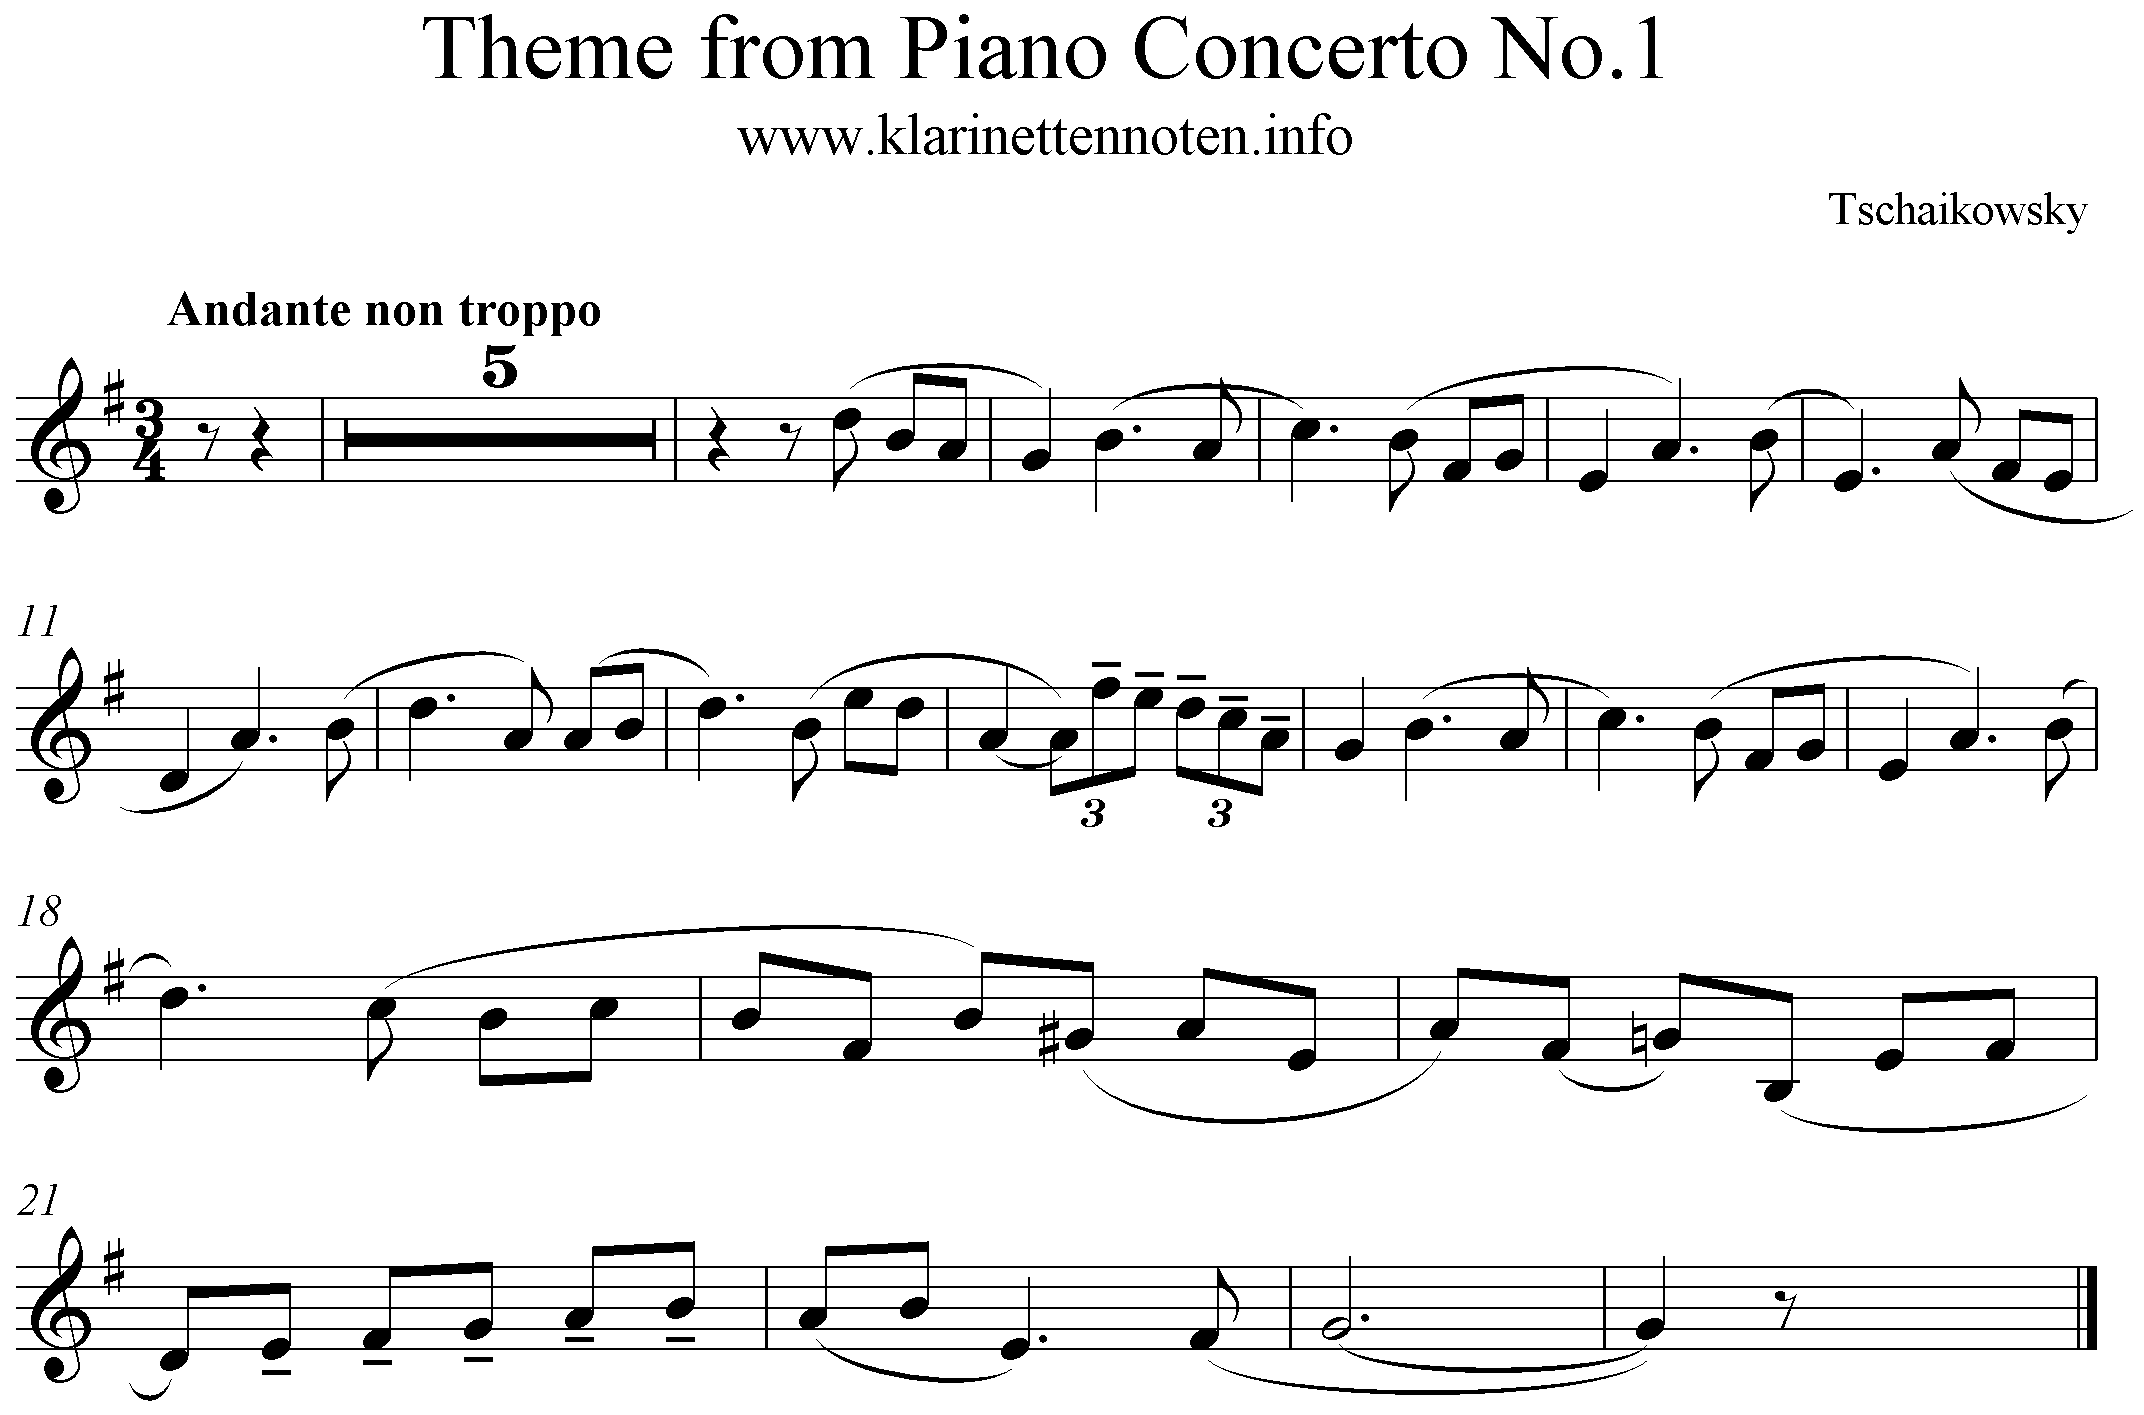 Theme from Piano Concerto No1 Tschaikowsky